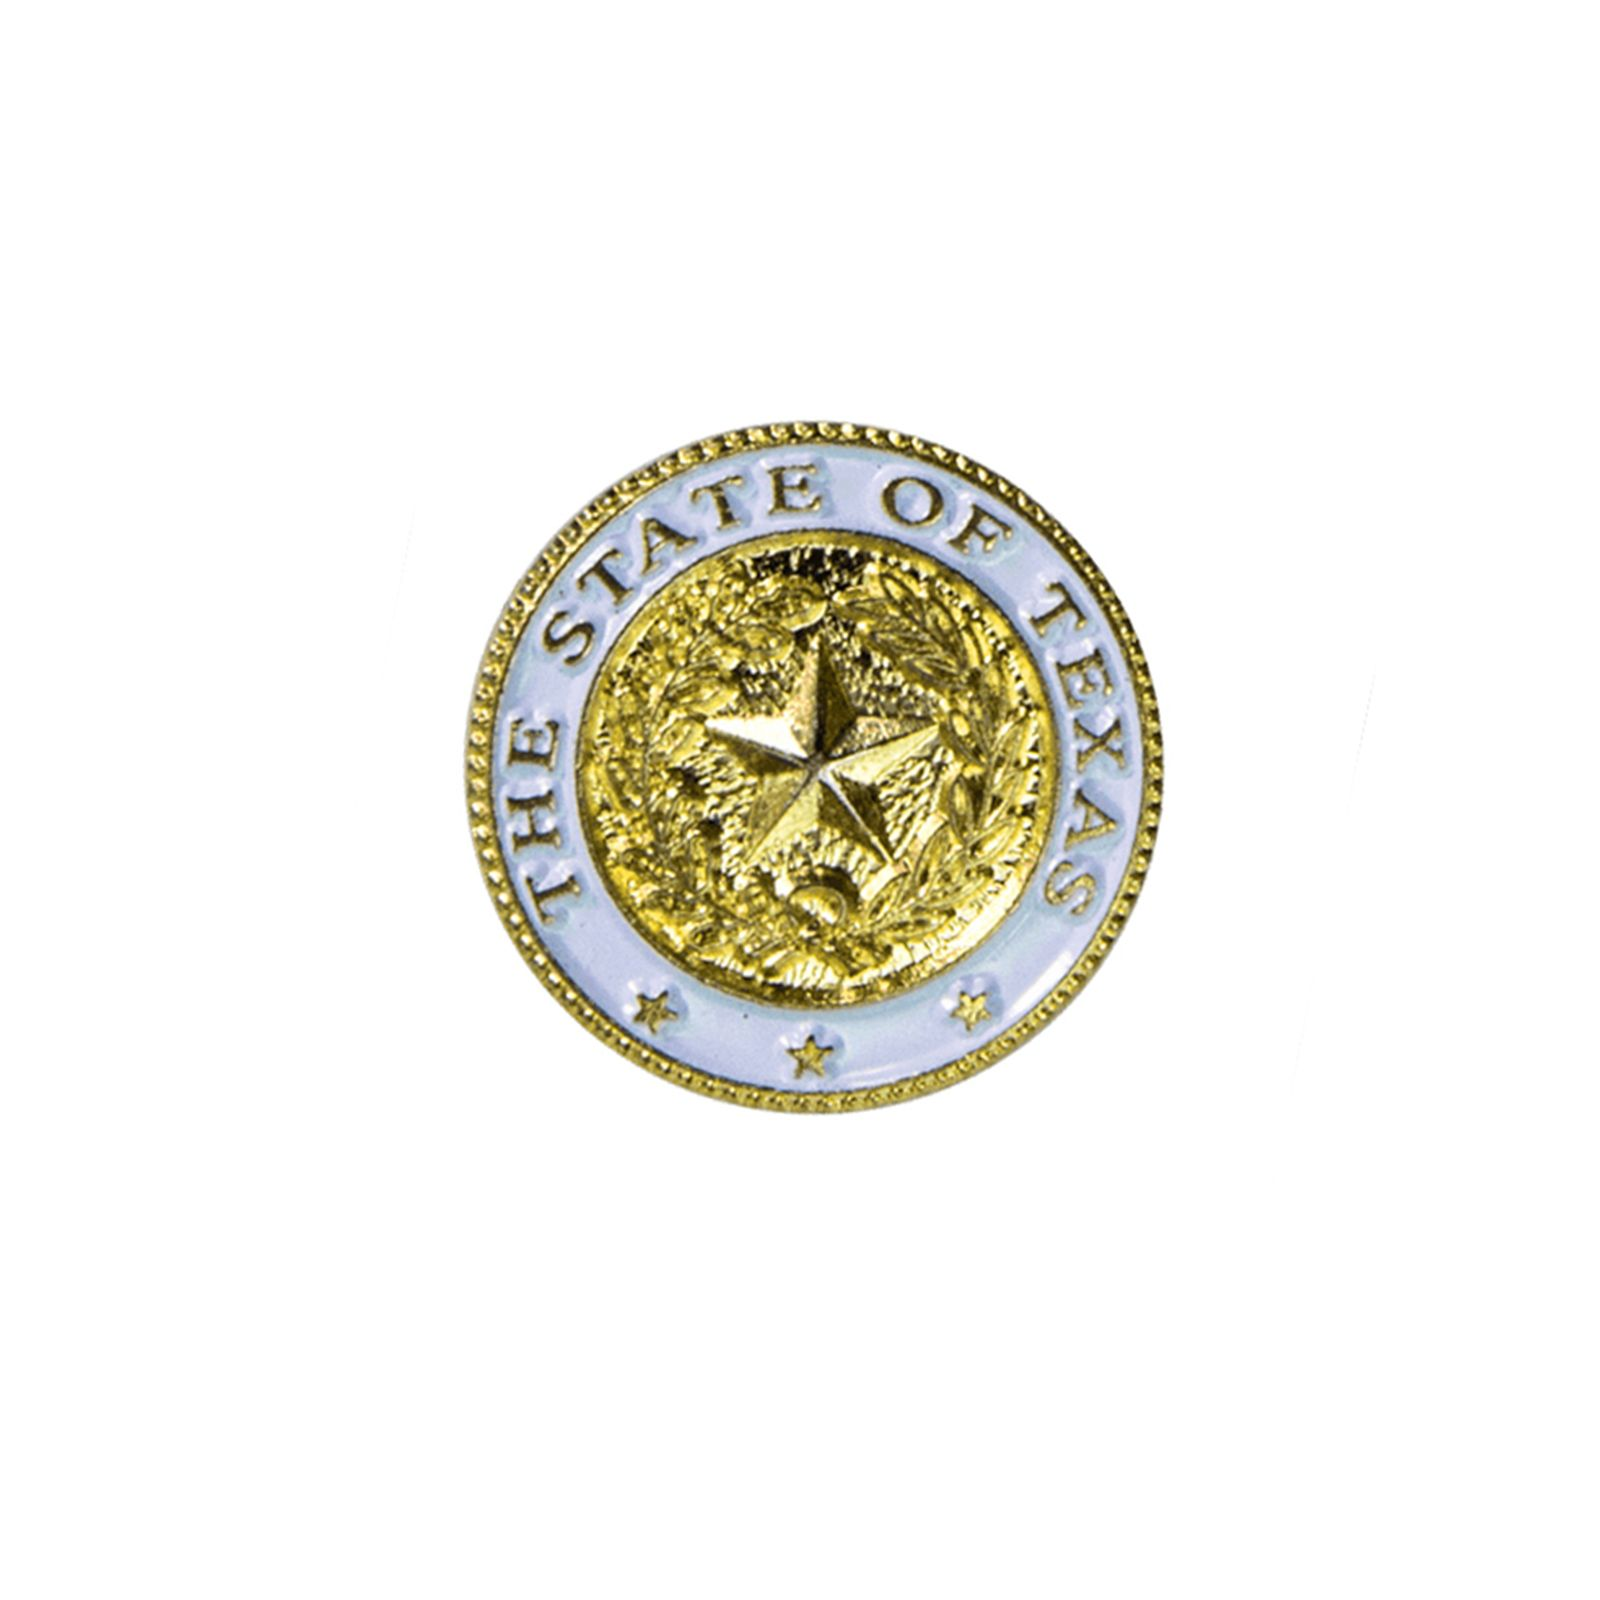 State Seal Lapel Pin - Gold